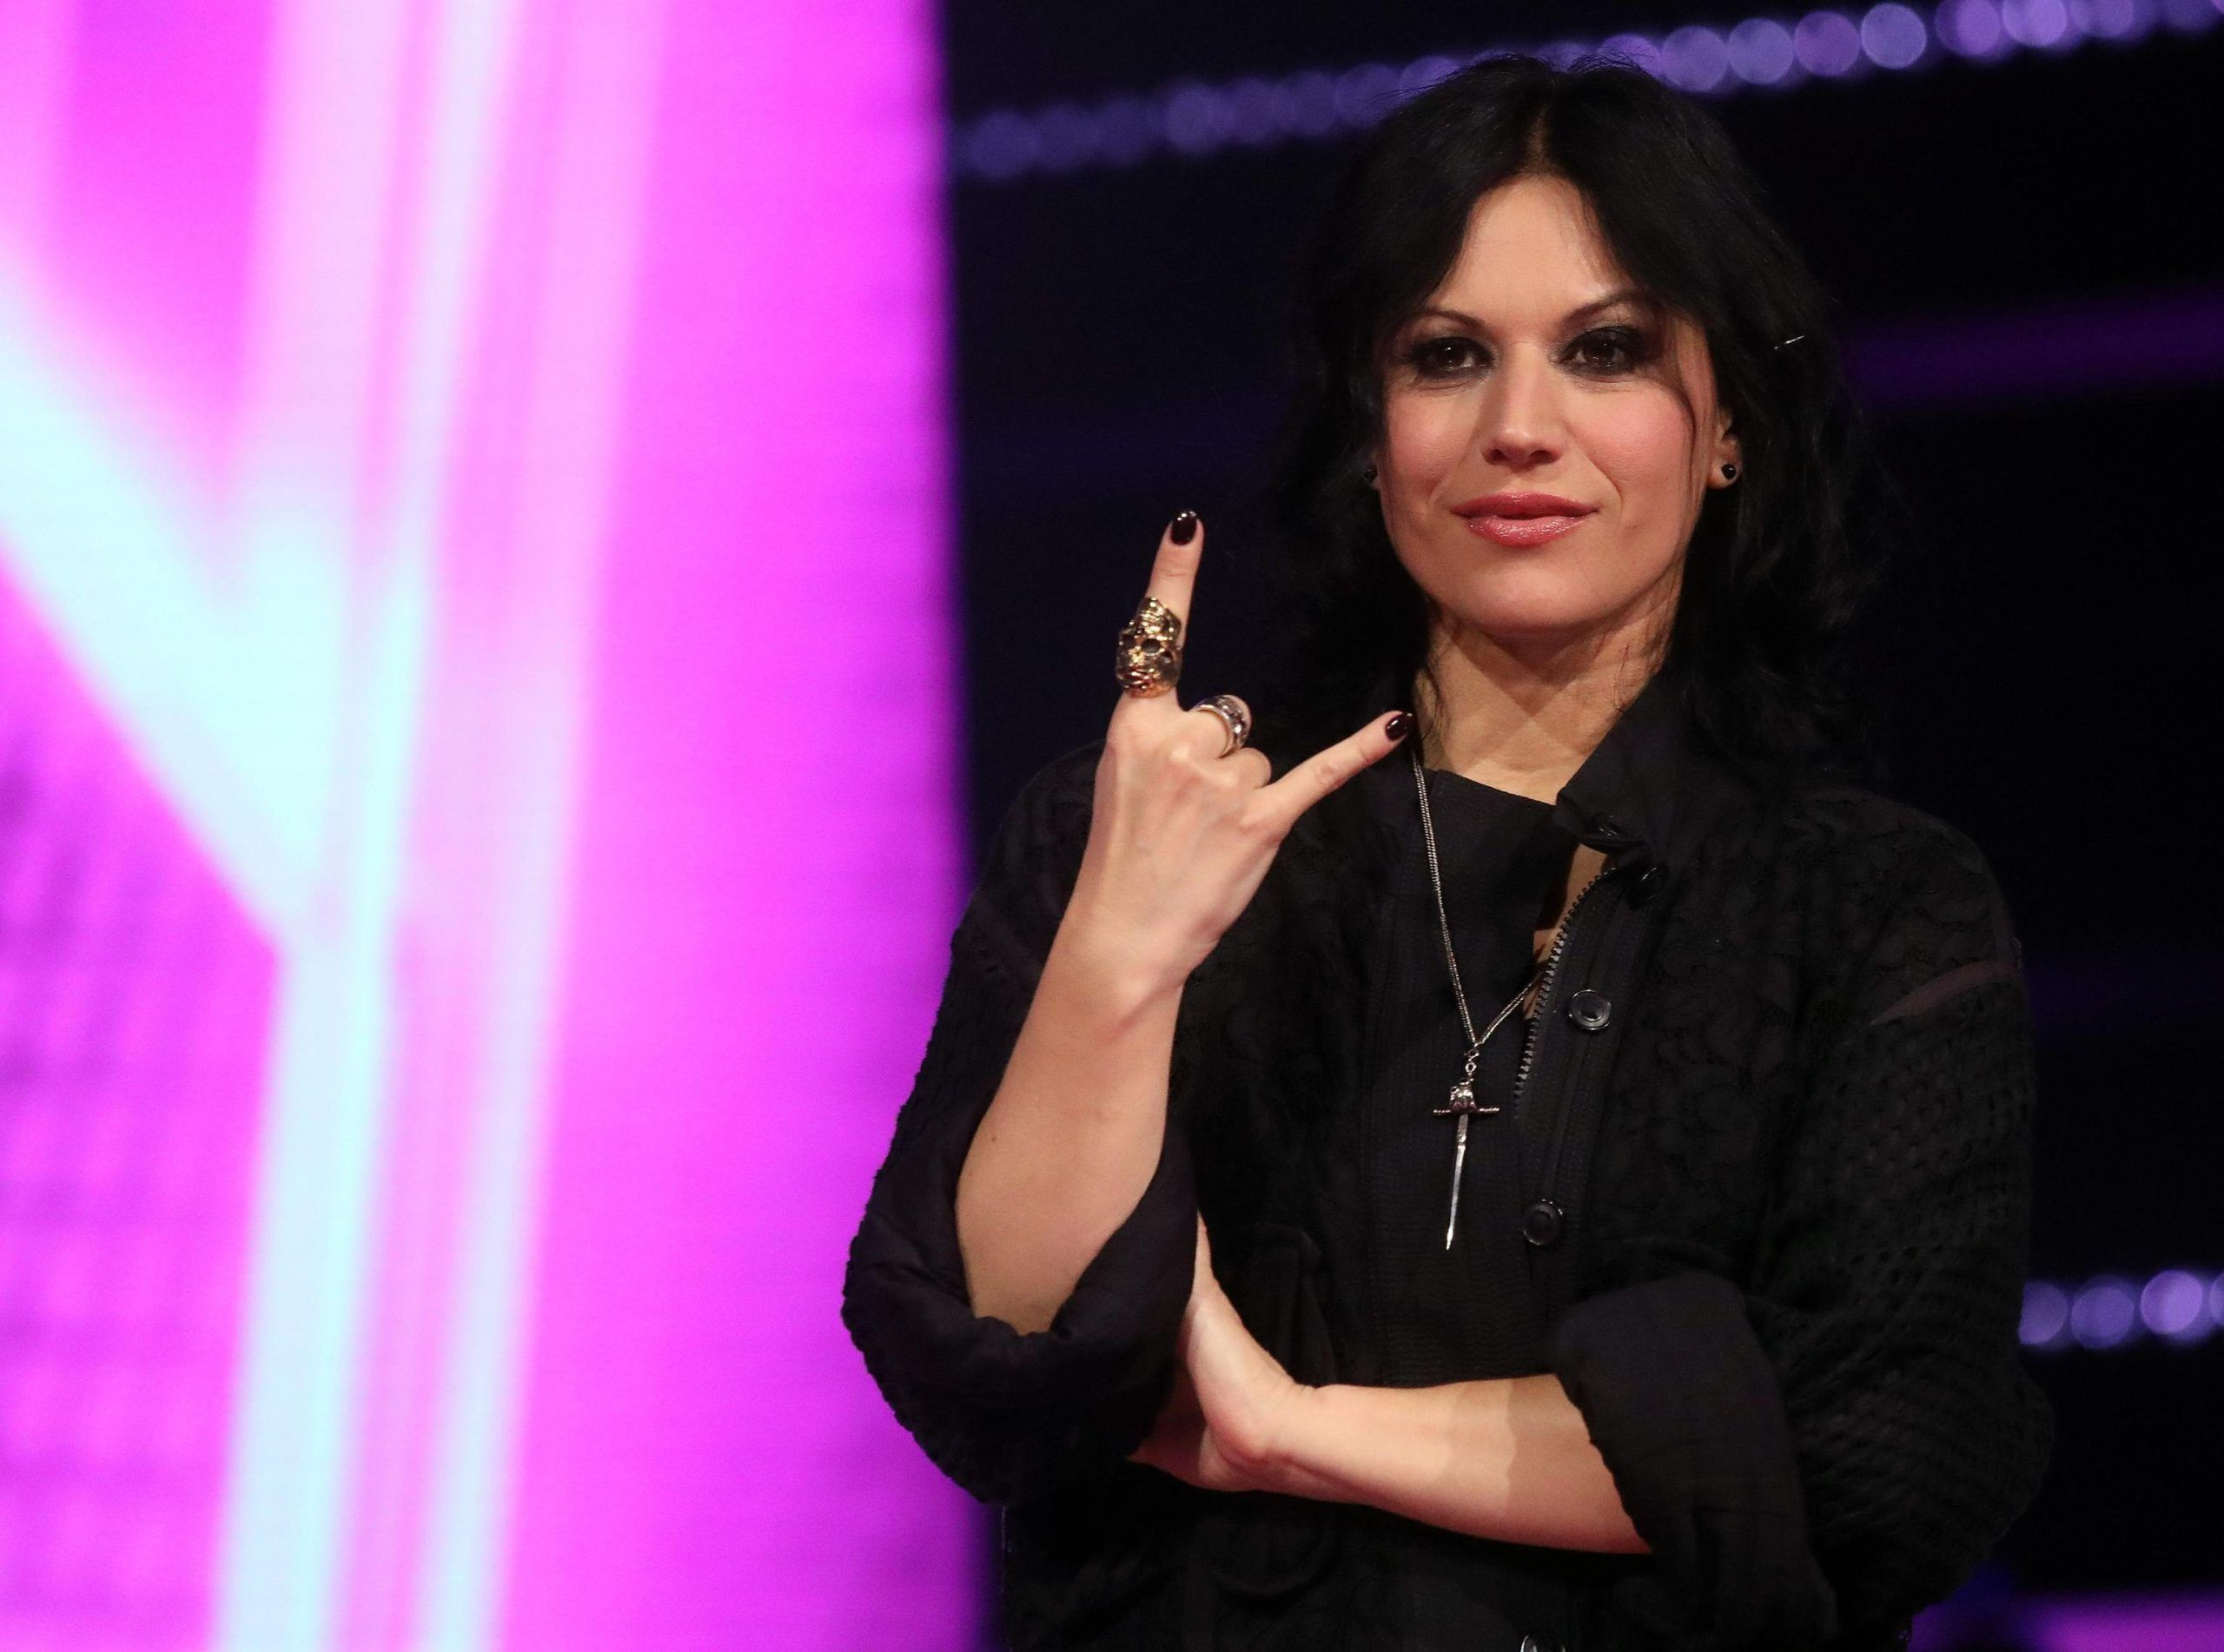 cristina scabbia coach the voice